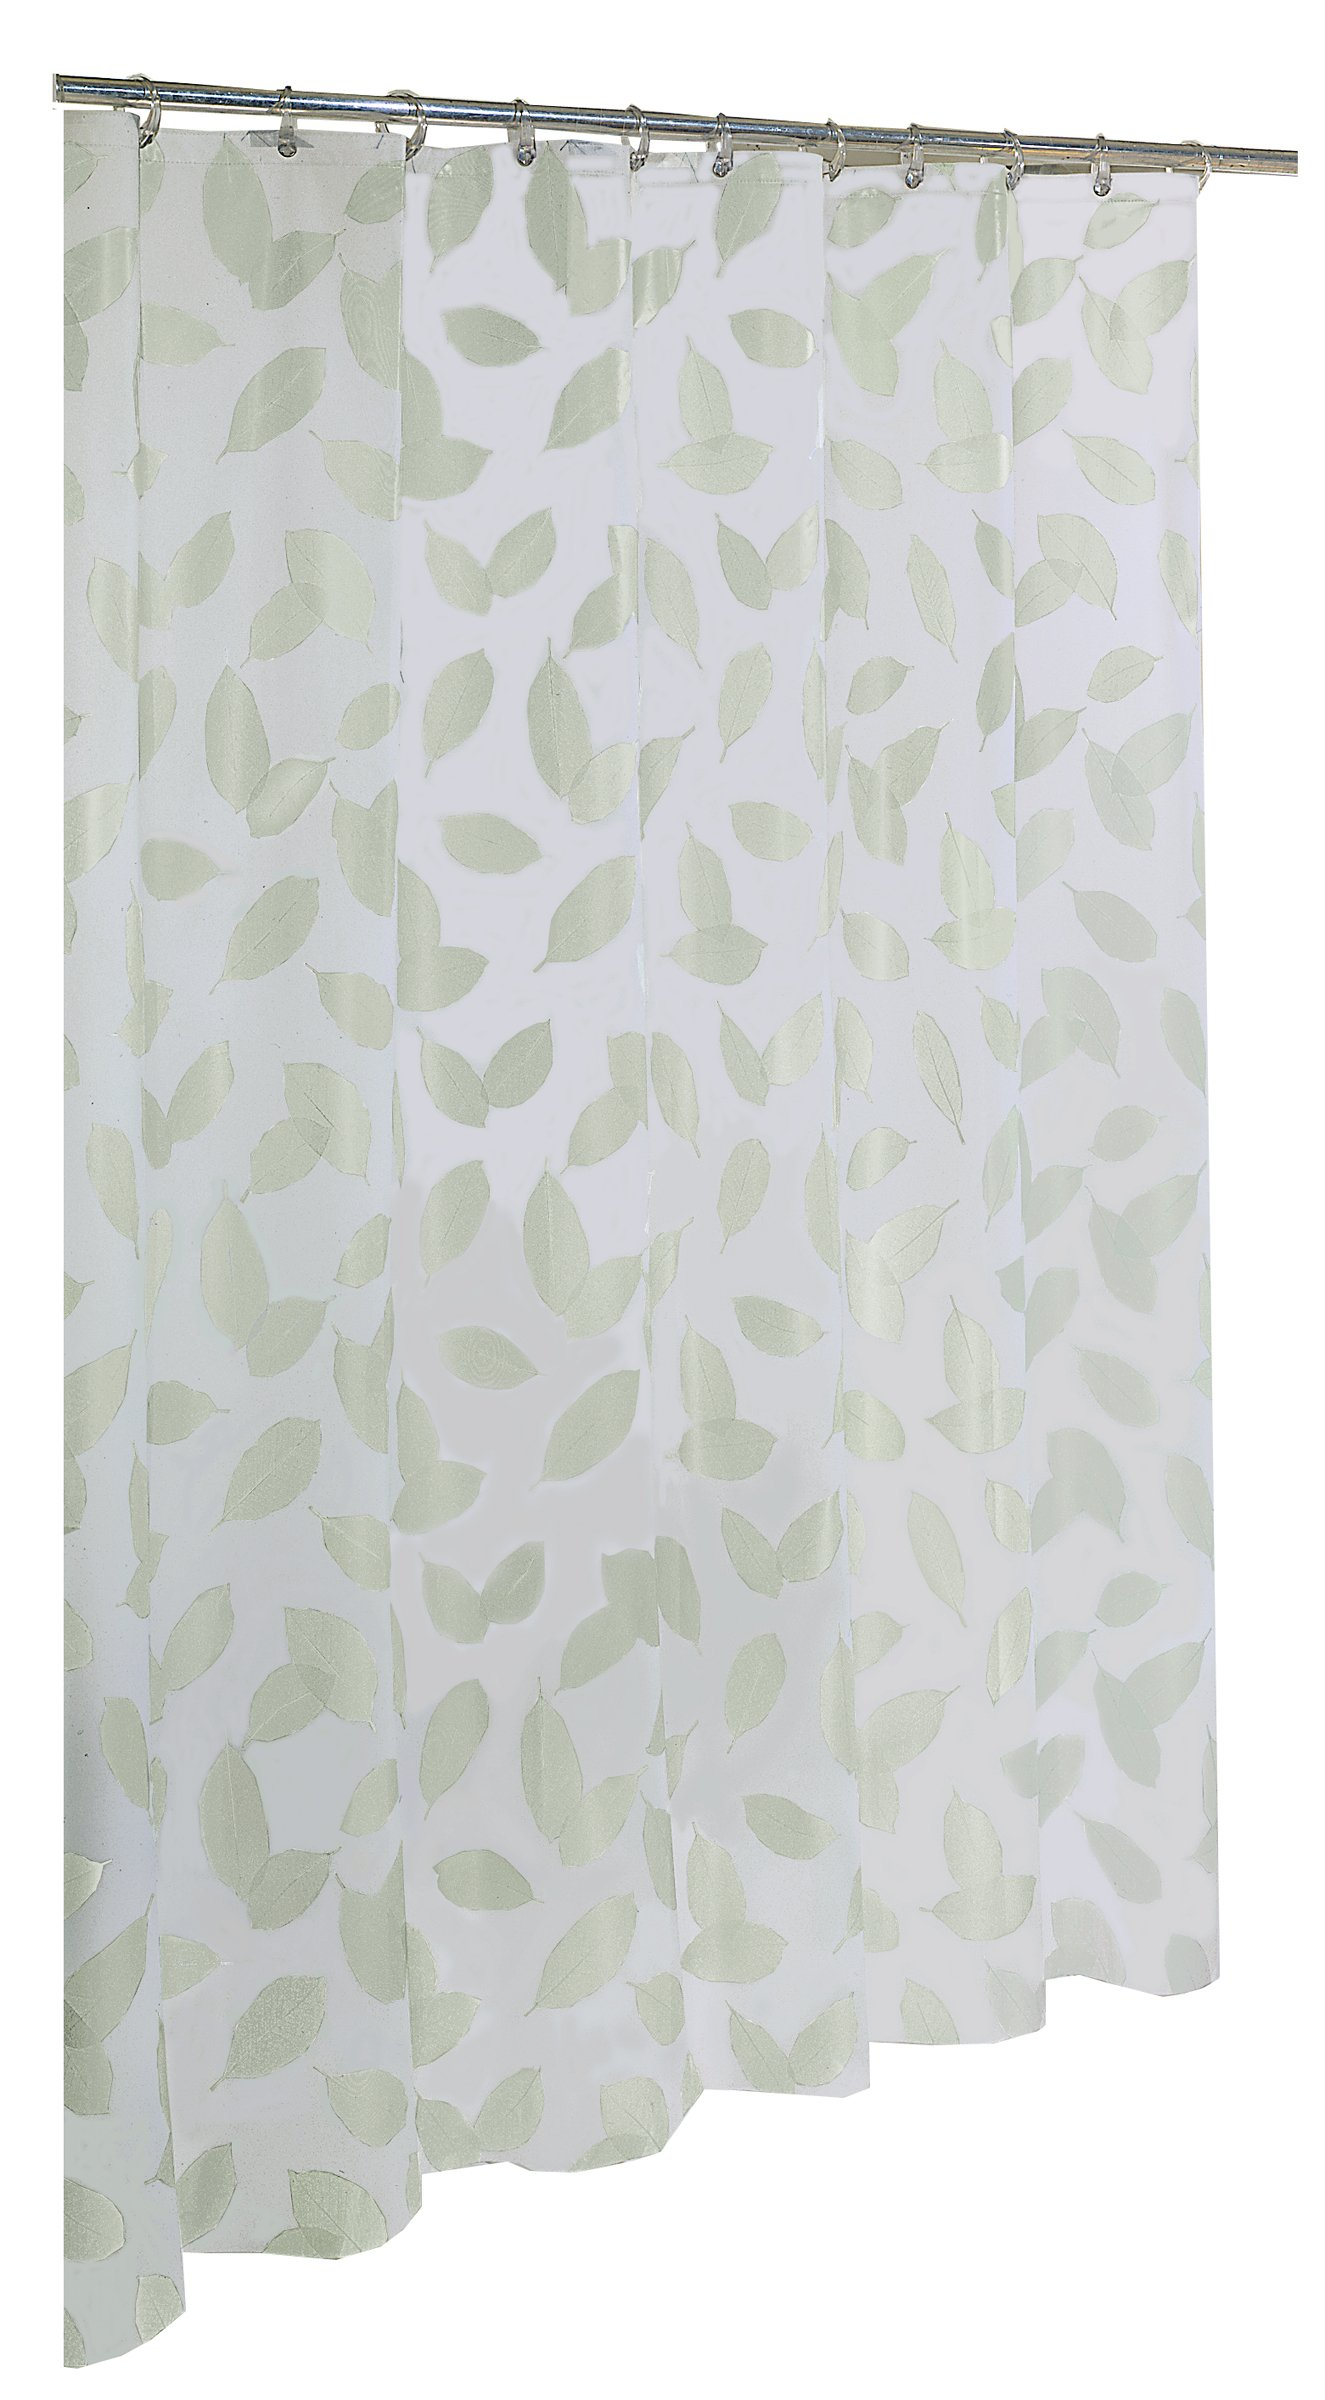 """EXCELL Home Fashions By Appointment Modern Leaf Fly PEVA Shower Curtain, PVC Free, No Chemical Odors, 100% Water-Resistant, Rust Resistant Grommets, For Master, Guest Bathroom, 70"""" x 72"""", White - PEVA SHOWER CURTAIN: Made from 100% commercial grade PEVA vinyl, the Modern Leaf Fly Shower Curtain is odorless, chlorine and PVC free for safe home use. Premium quality curtain will stay clean and fresh for long MODERN LEAF FLY SHOWER CURTAIN: EXCELL's Home Fashions Shower Curtain features a trendy, pastel leaf motif blanket all over. This beautiful and sleek curtain will perfectly fit your bathroom shower or bathtub area perfectly WATER-REPELLENT SHOWER CURTAIN: Made from 100% PEVA, this non- toxic shower curtain is water repellent. This strong and durable shower curtain will keep the water in the tub, away from the bathroom floor. No need for a separate liner - shower-curtains, bathroom-linens, bathroom - 81vCKS2JqqL -"""